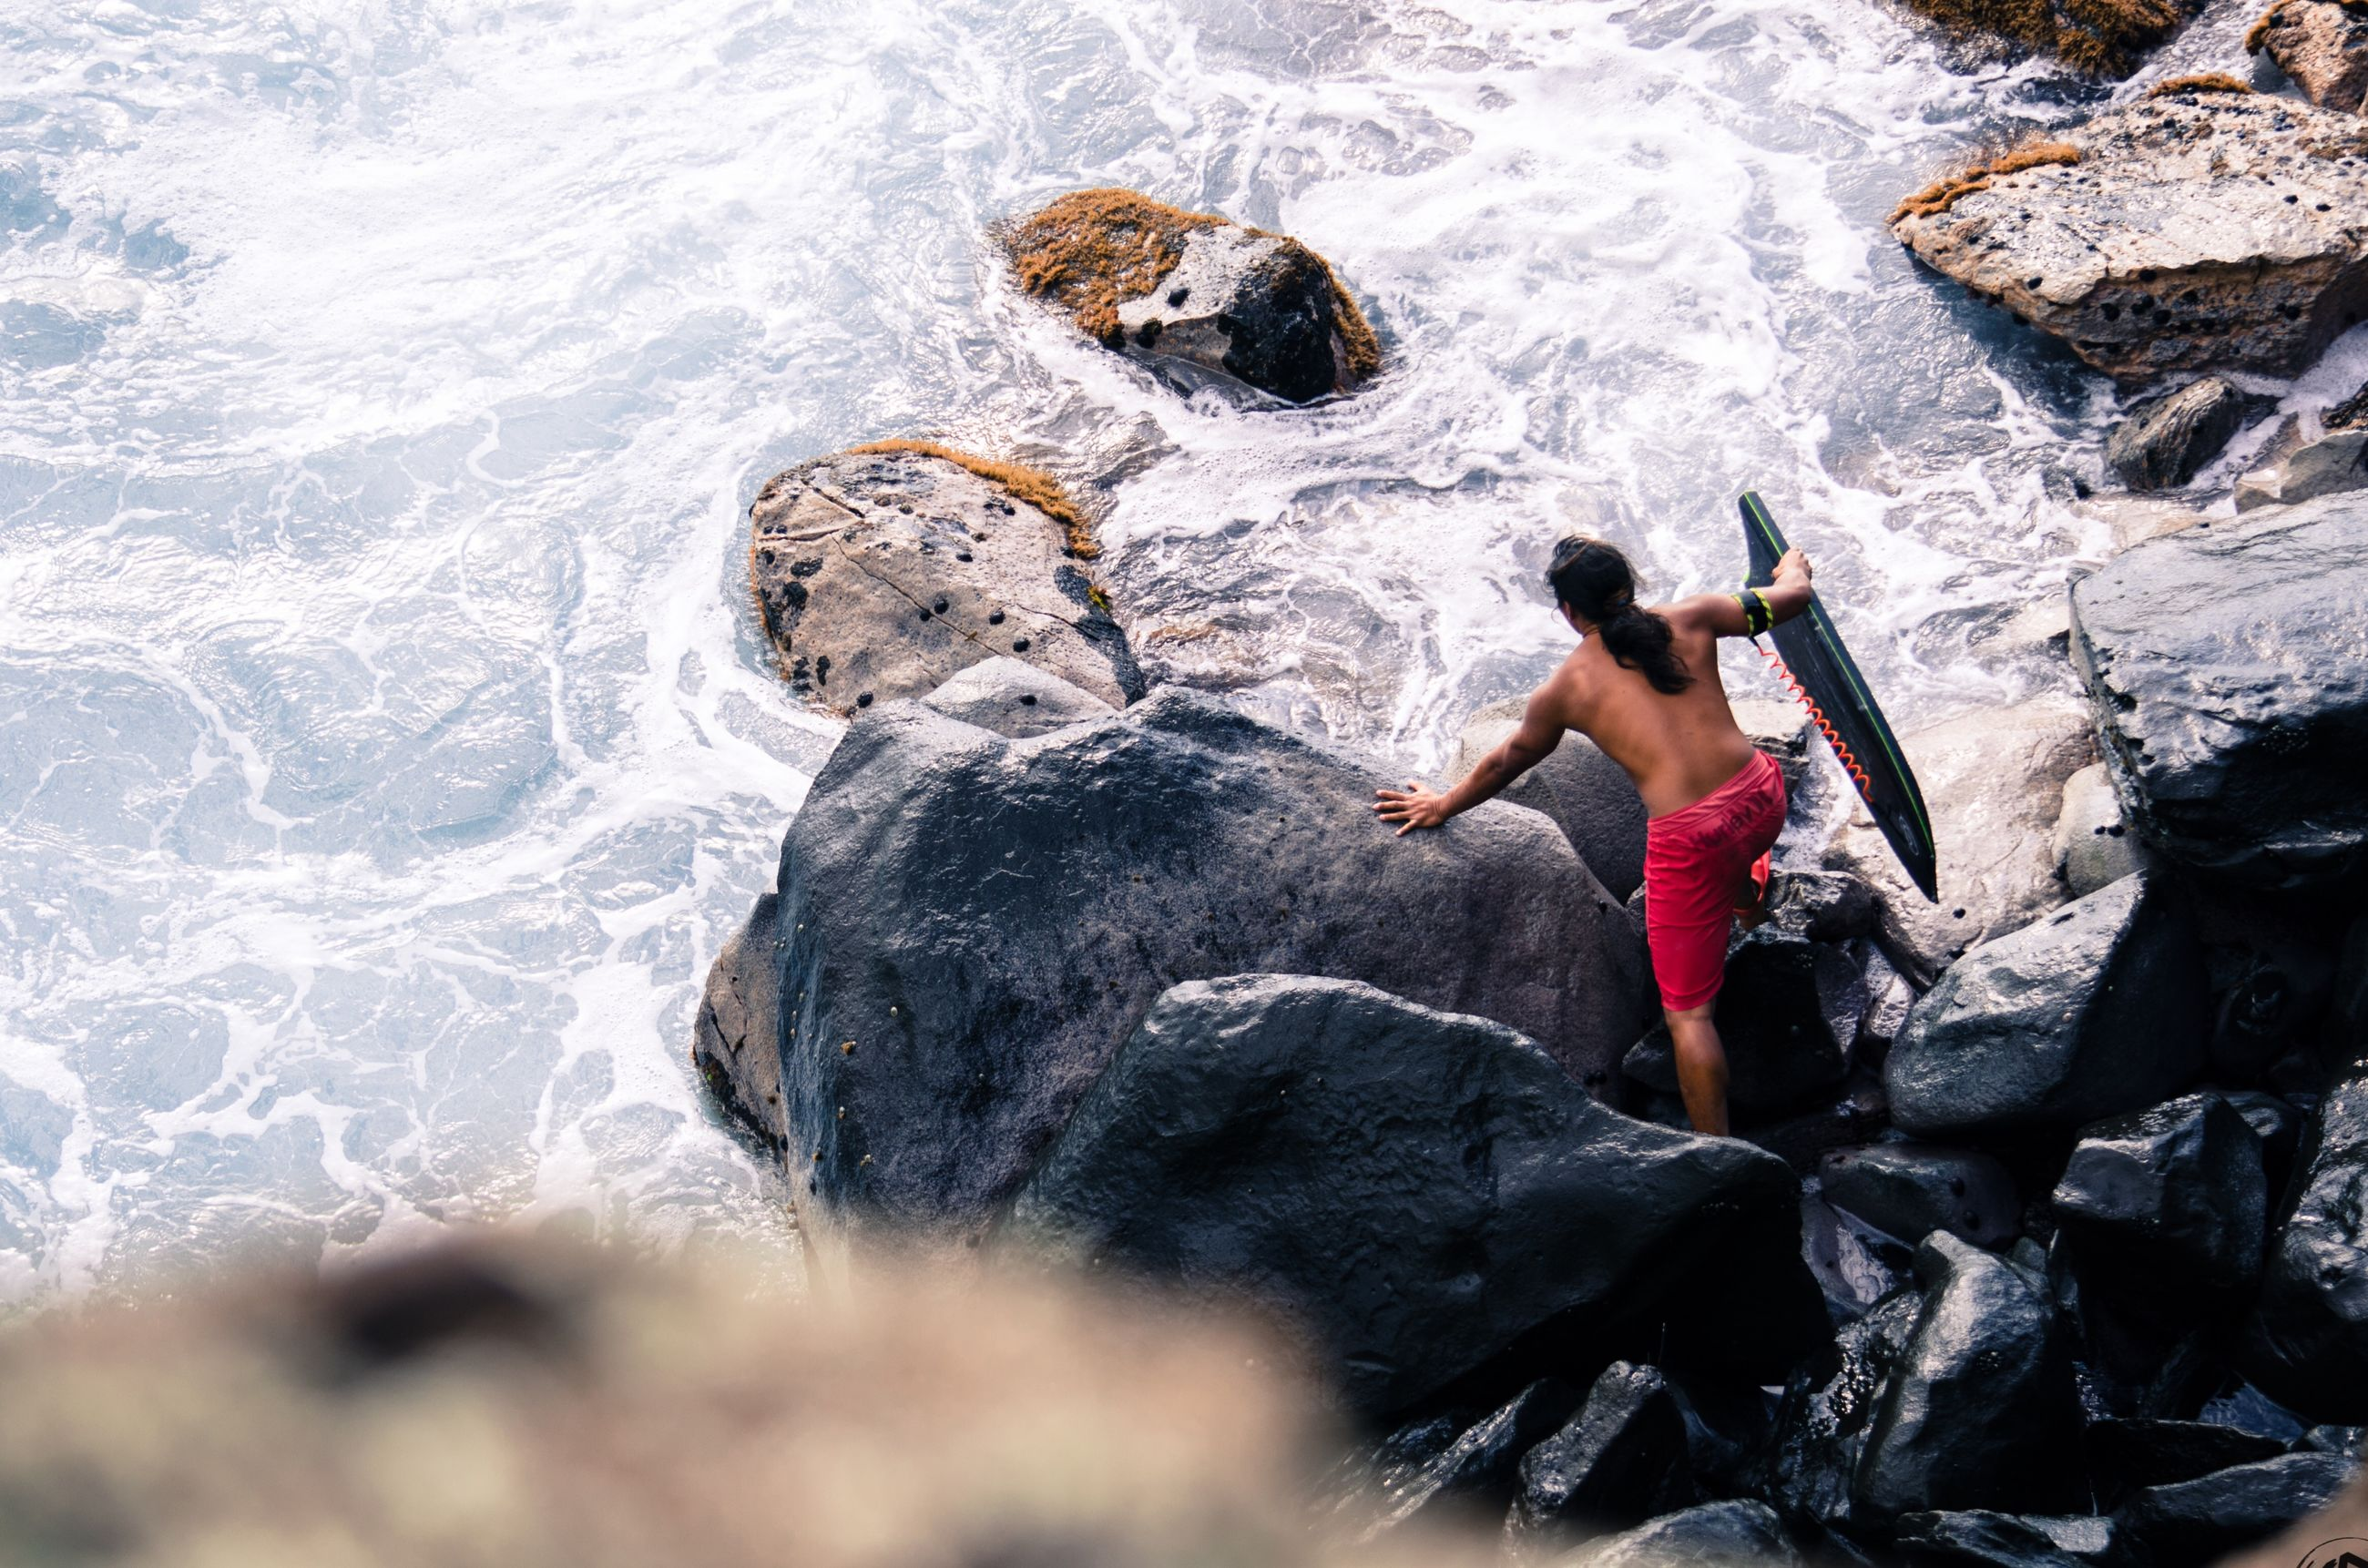 water, lifestyles, leisure activity, full length, rock - object, high angle view, person, childhood, shirtless, vacations, casual clothing, motion, elementary age, beach, boys, surf, day, nature